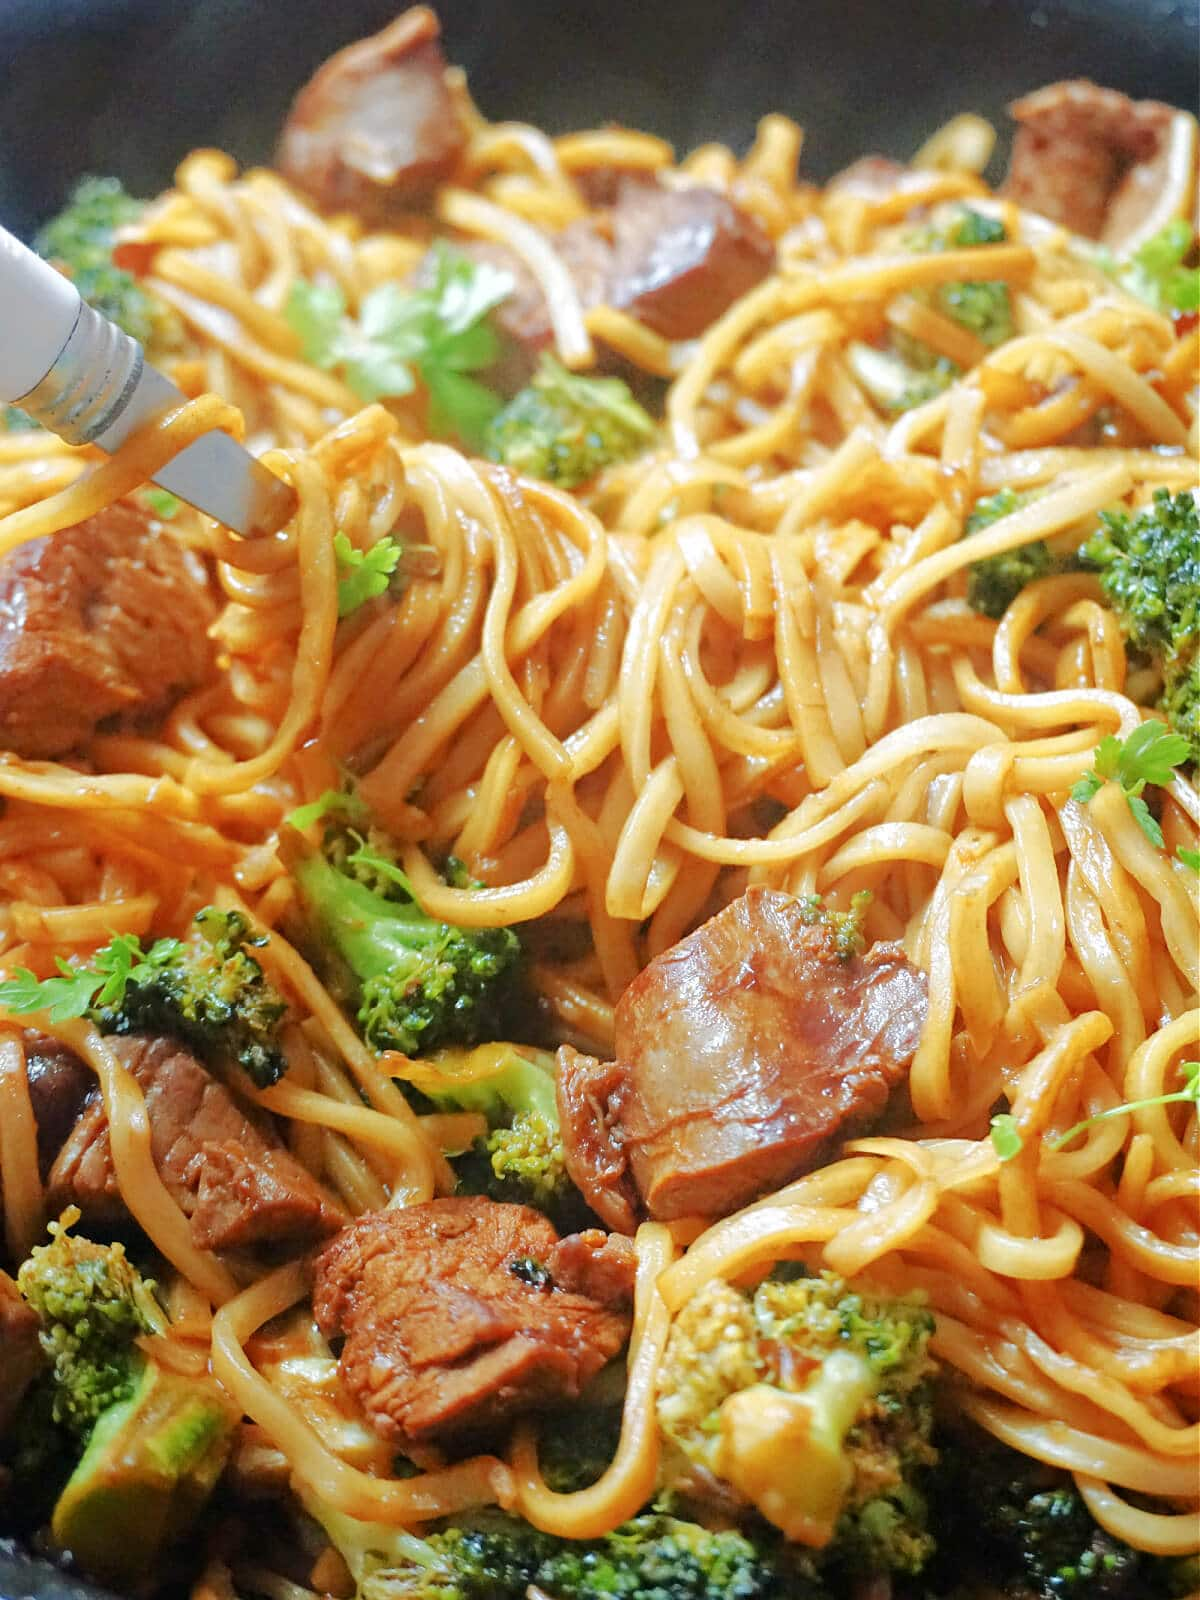 Close-up shot of a noodle stir fry with beef and broccoli